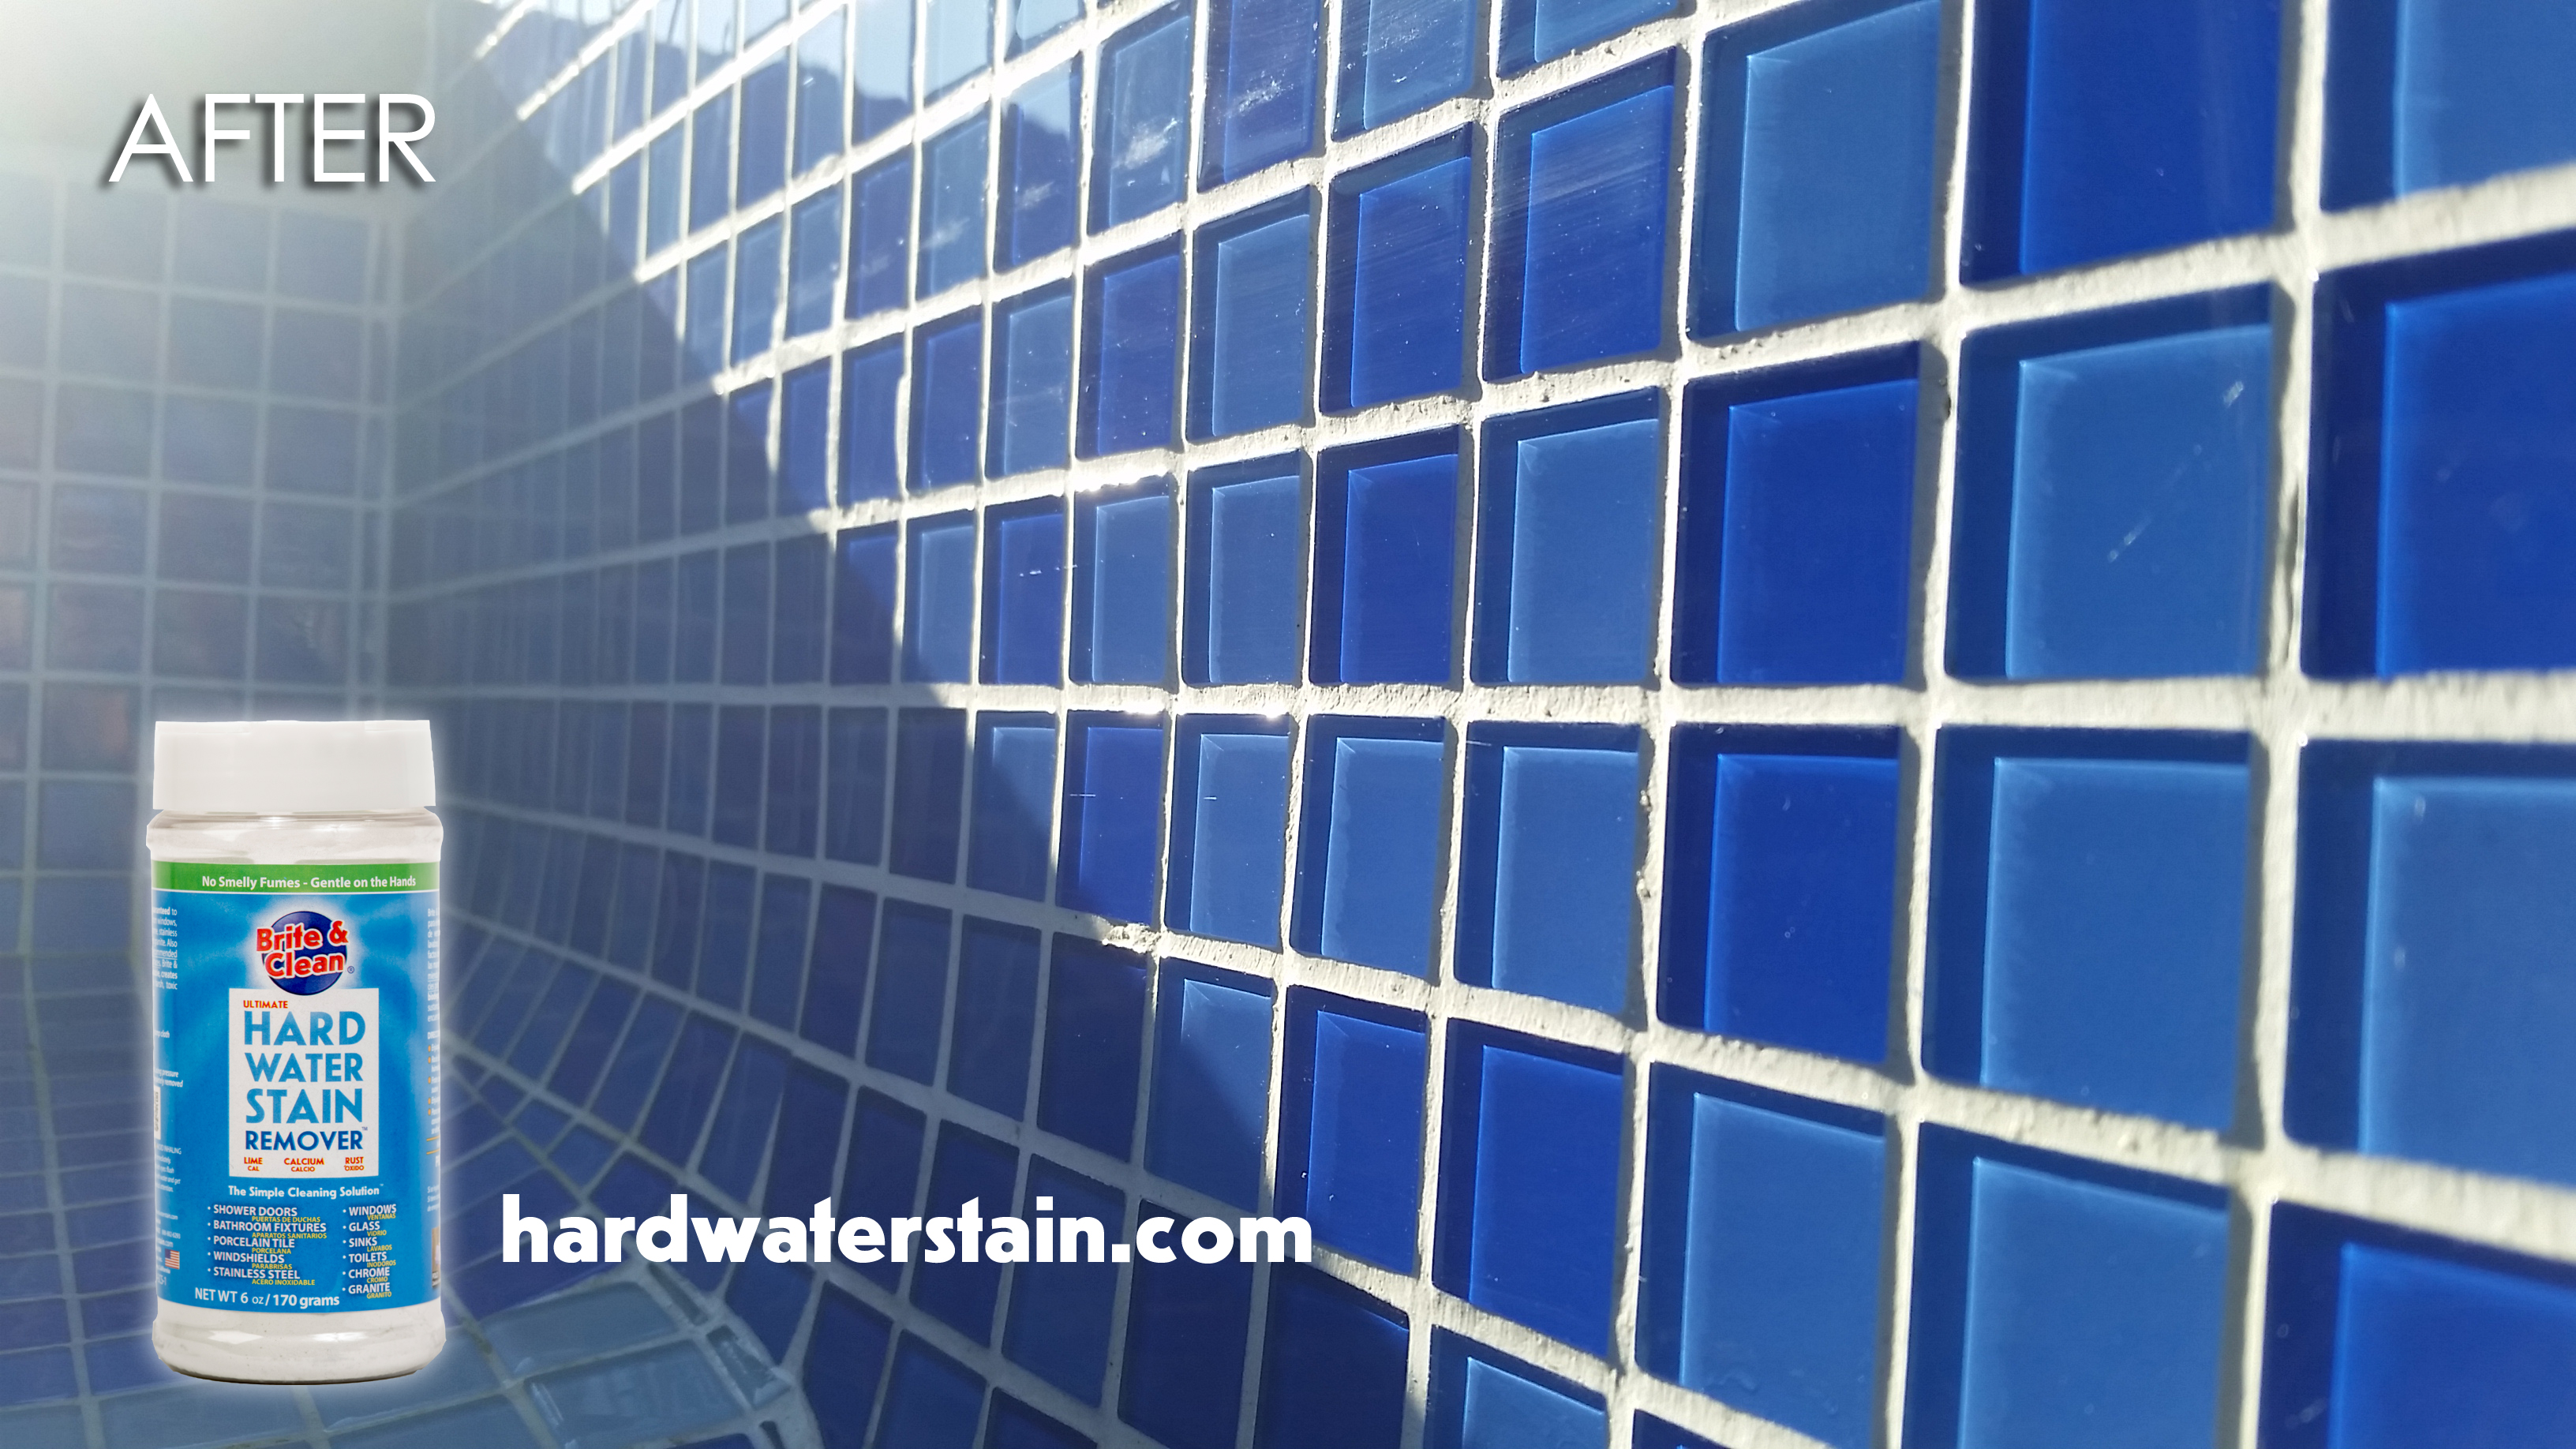 hard water stain removal on glass pool tile with Brite & Clean